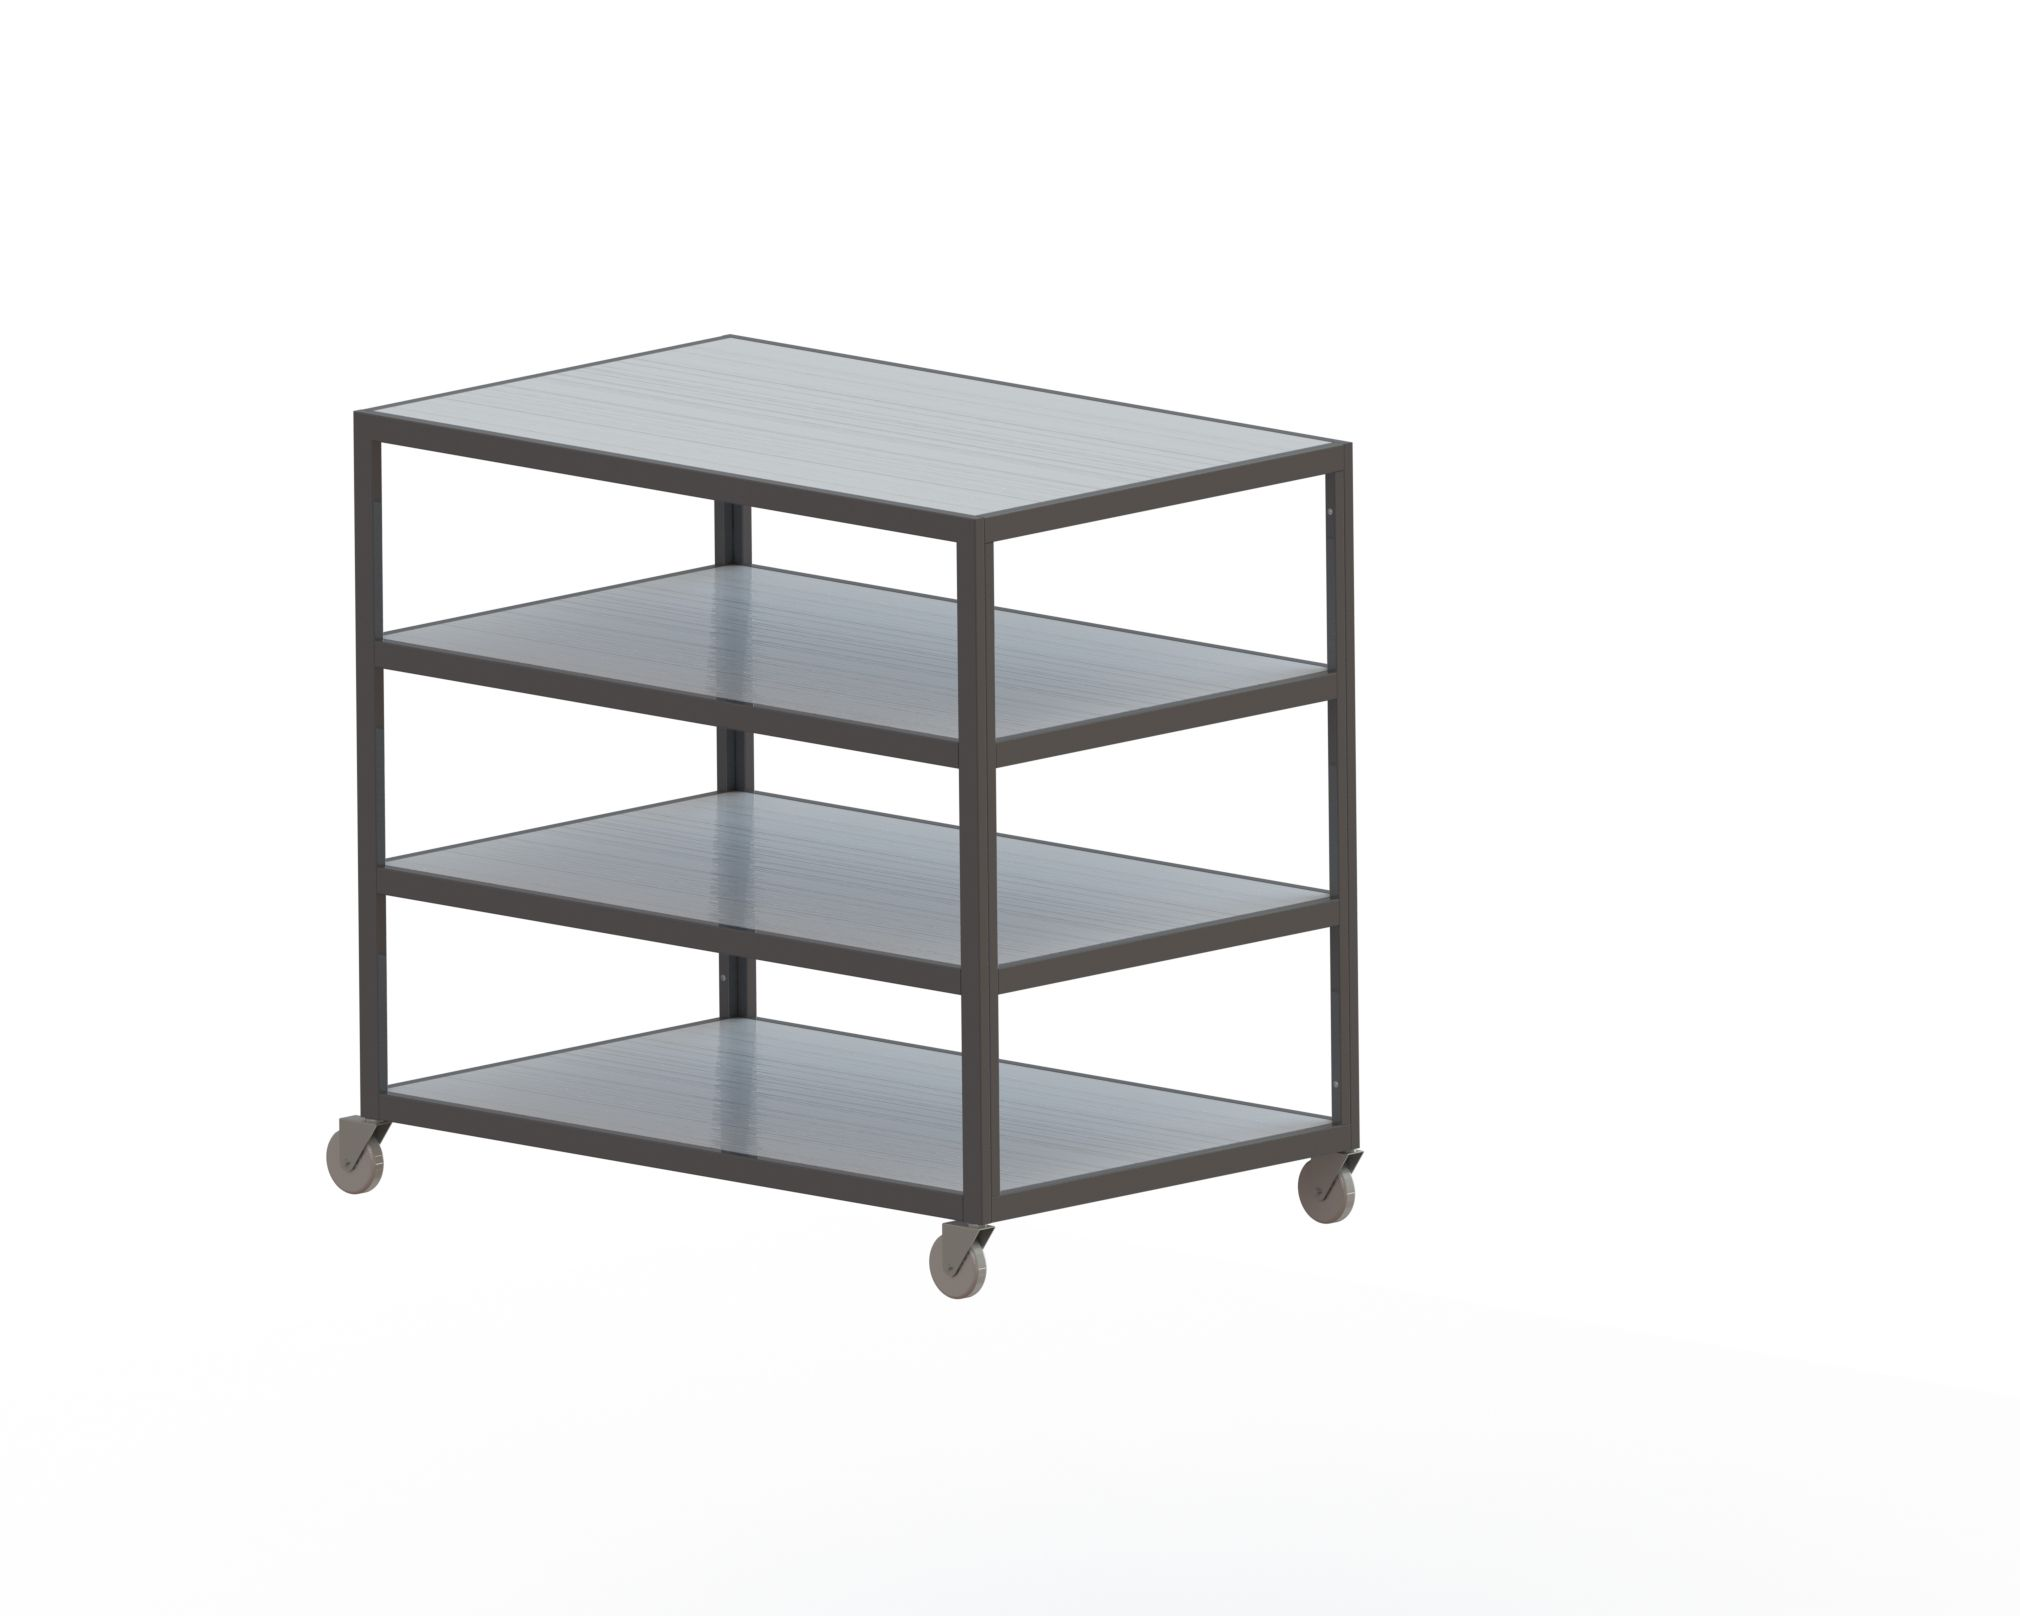 Display table, with MDF panel, with wheels, more items @ Linkup Store Equipment Co., Ltd.